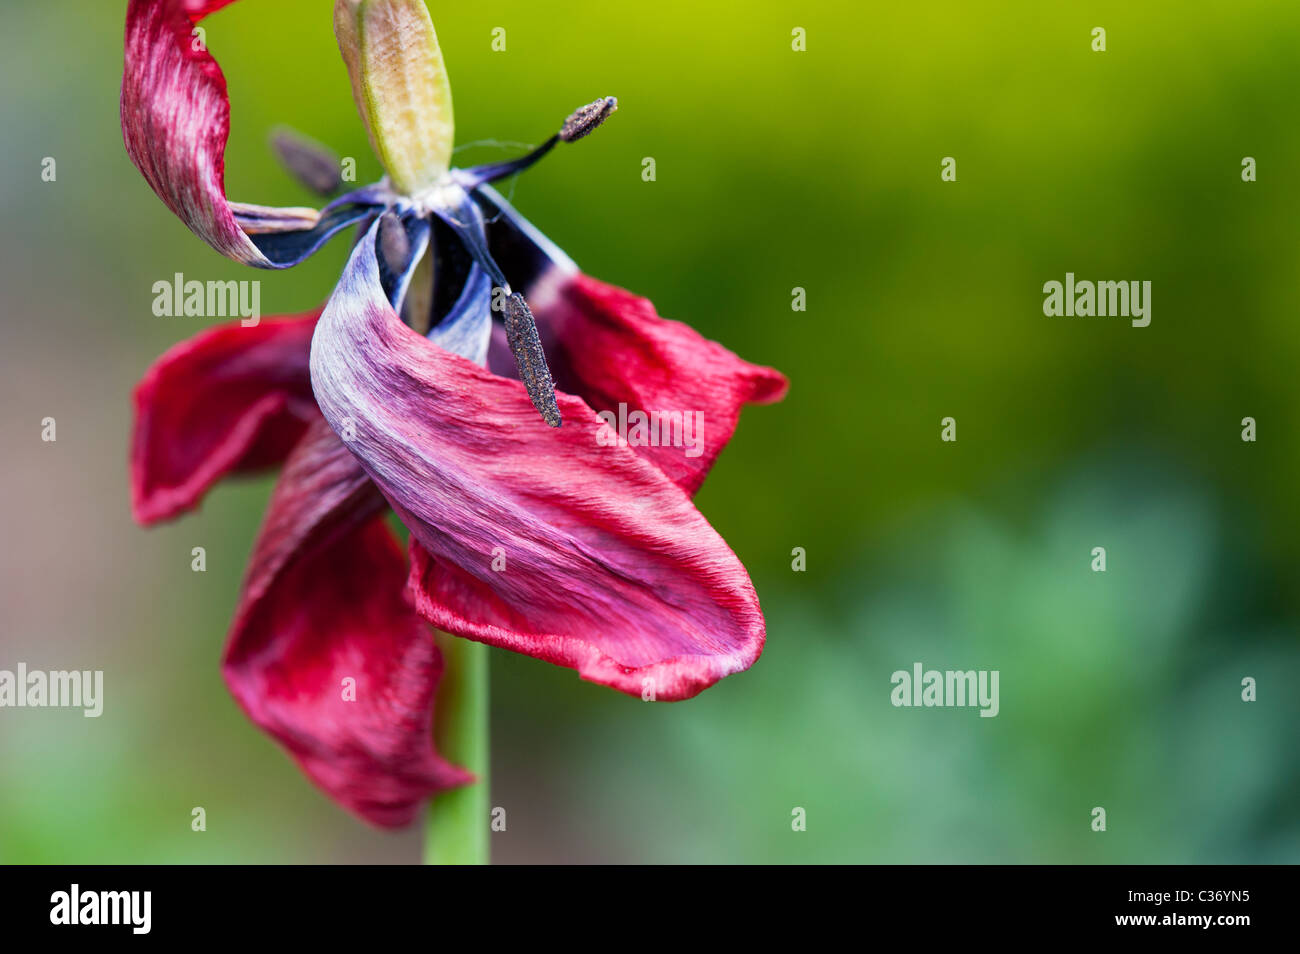 Dead wilting red tulip showing stamen and stigma in a garden - Stock Image